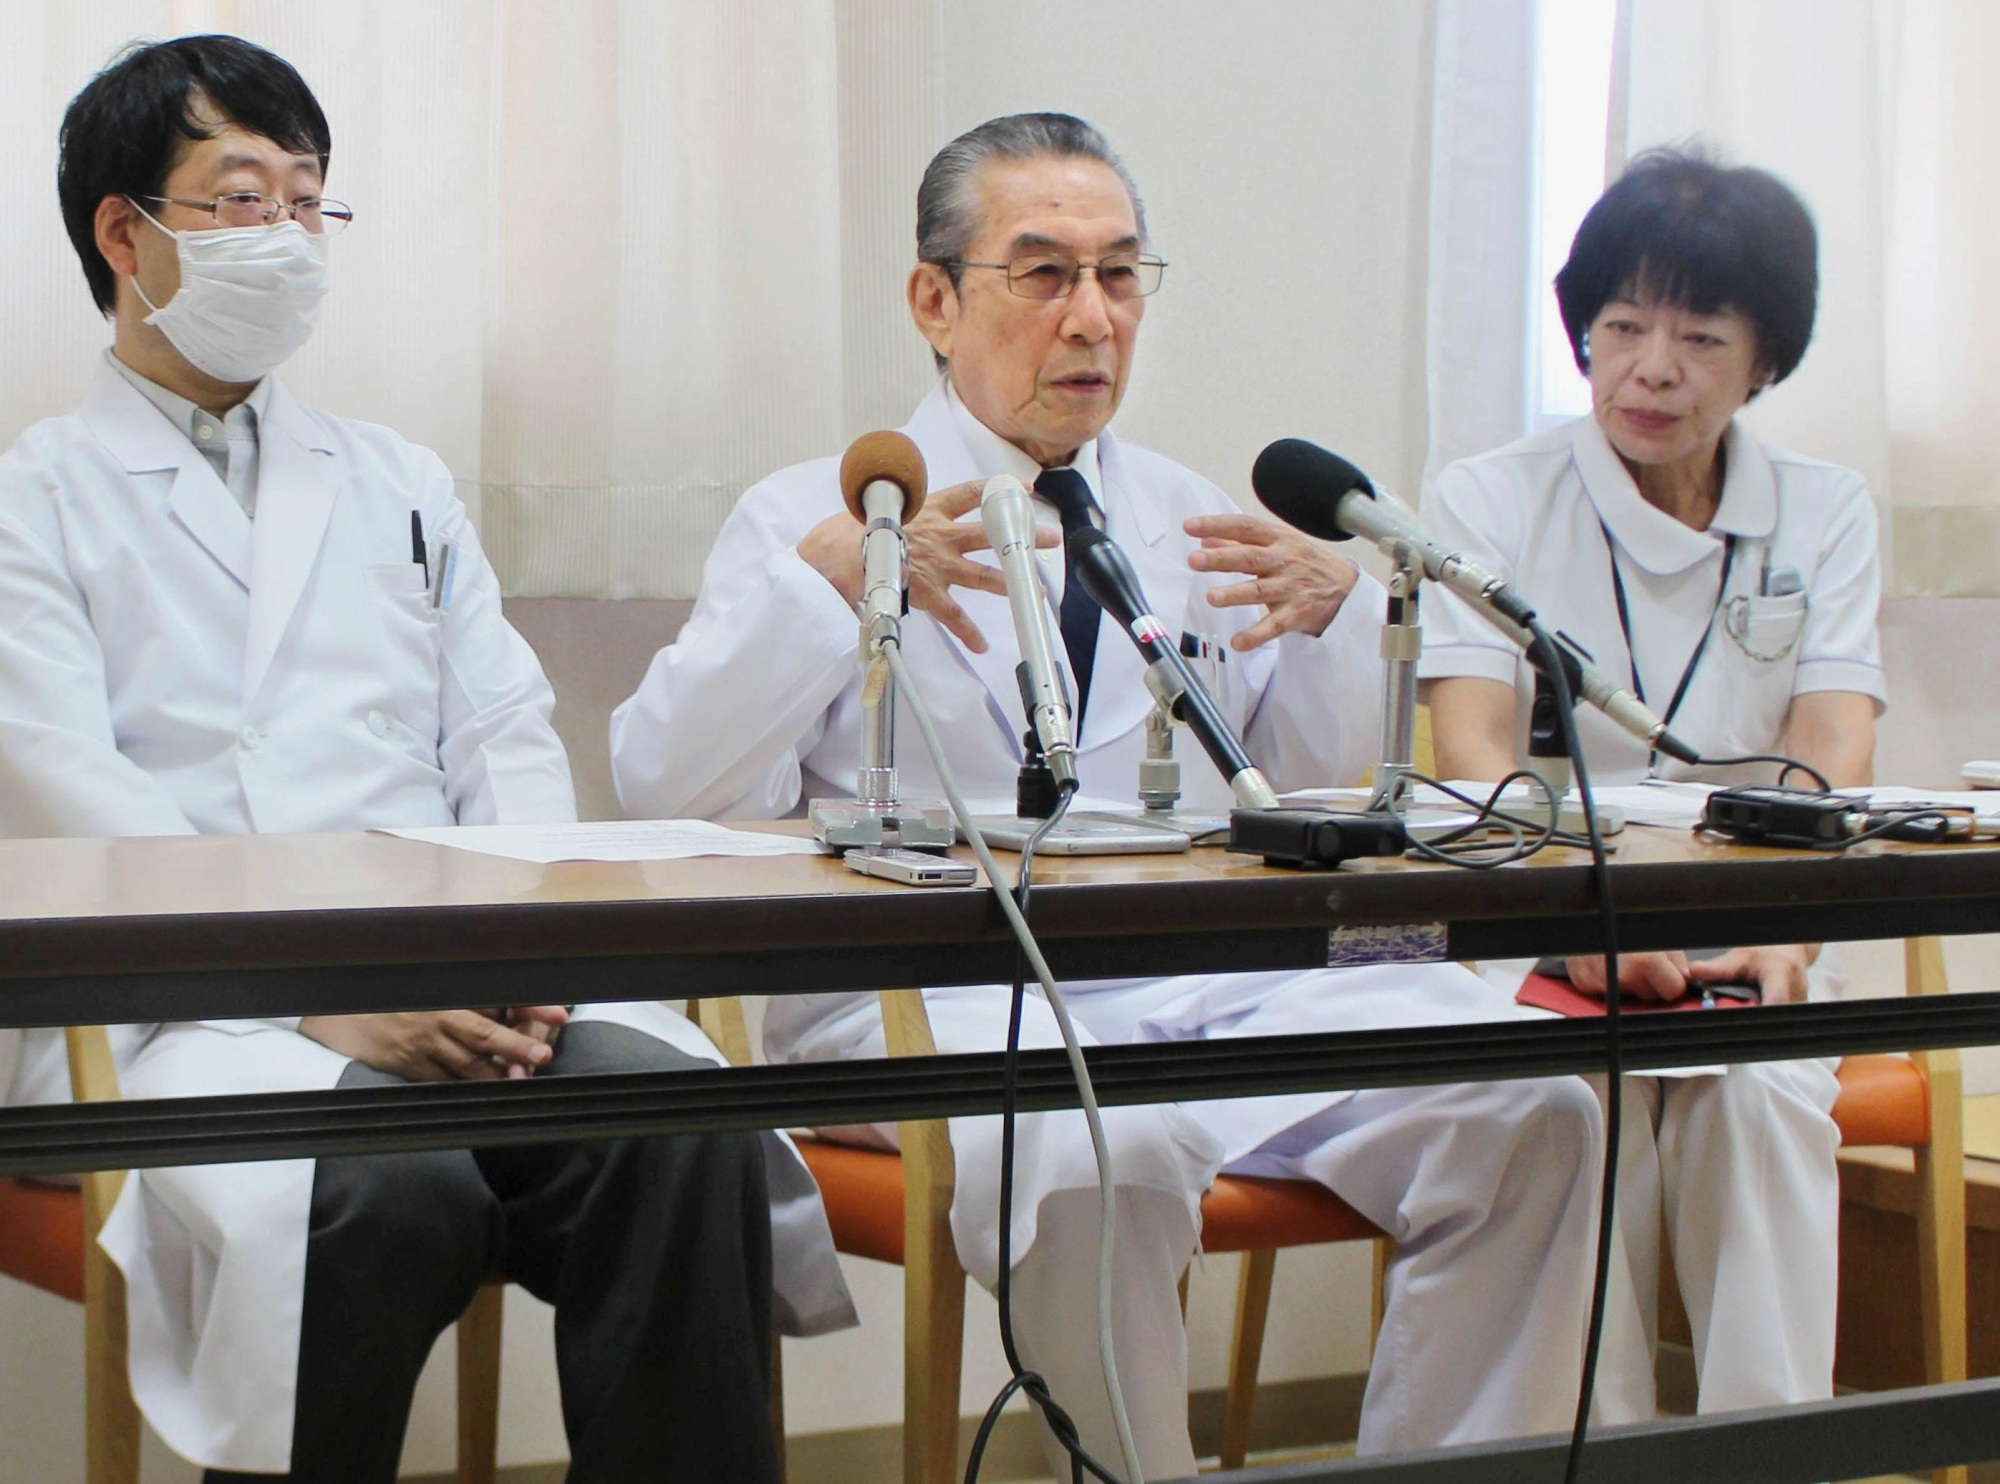 Kenichi Orishige, head of medical corporation Doujinkai, which runs the Soleil nursing home, in Takayama, Gifu Prefecture, speaks at a news conference on Friday.   KYODO